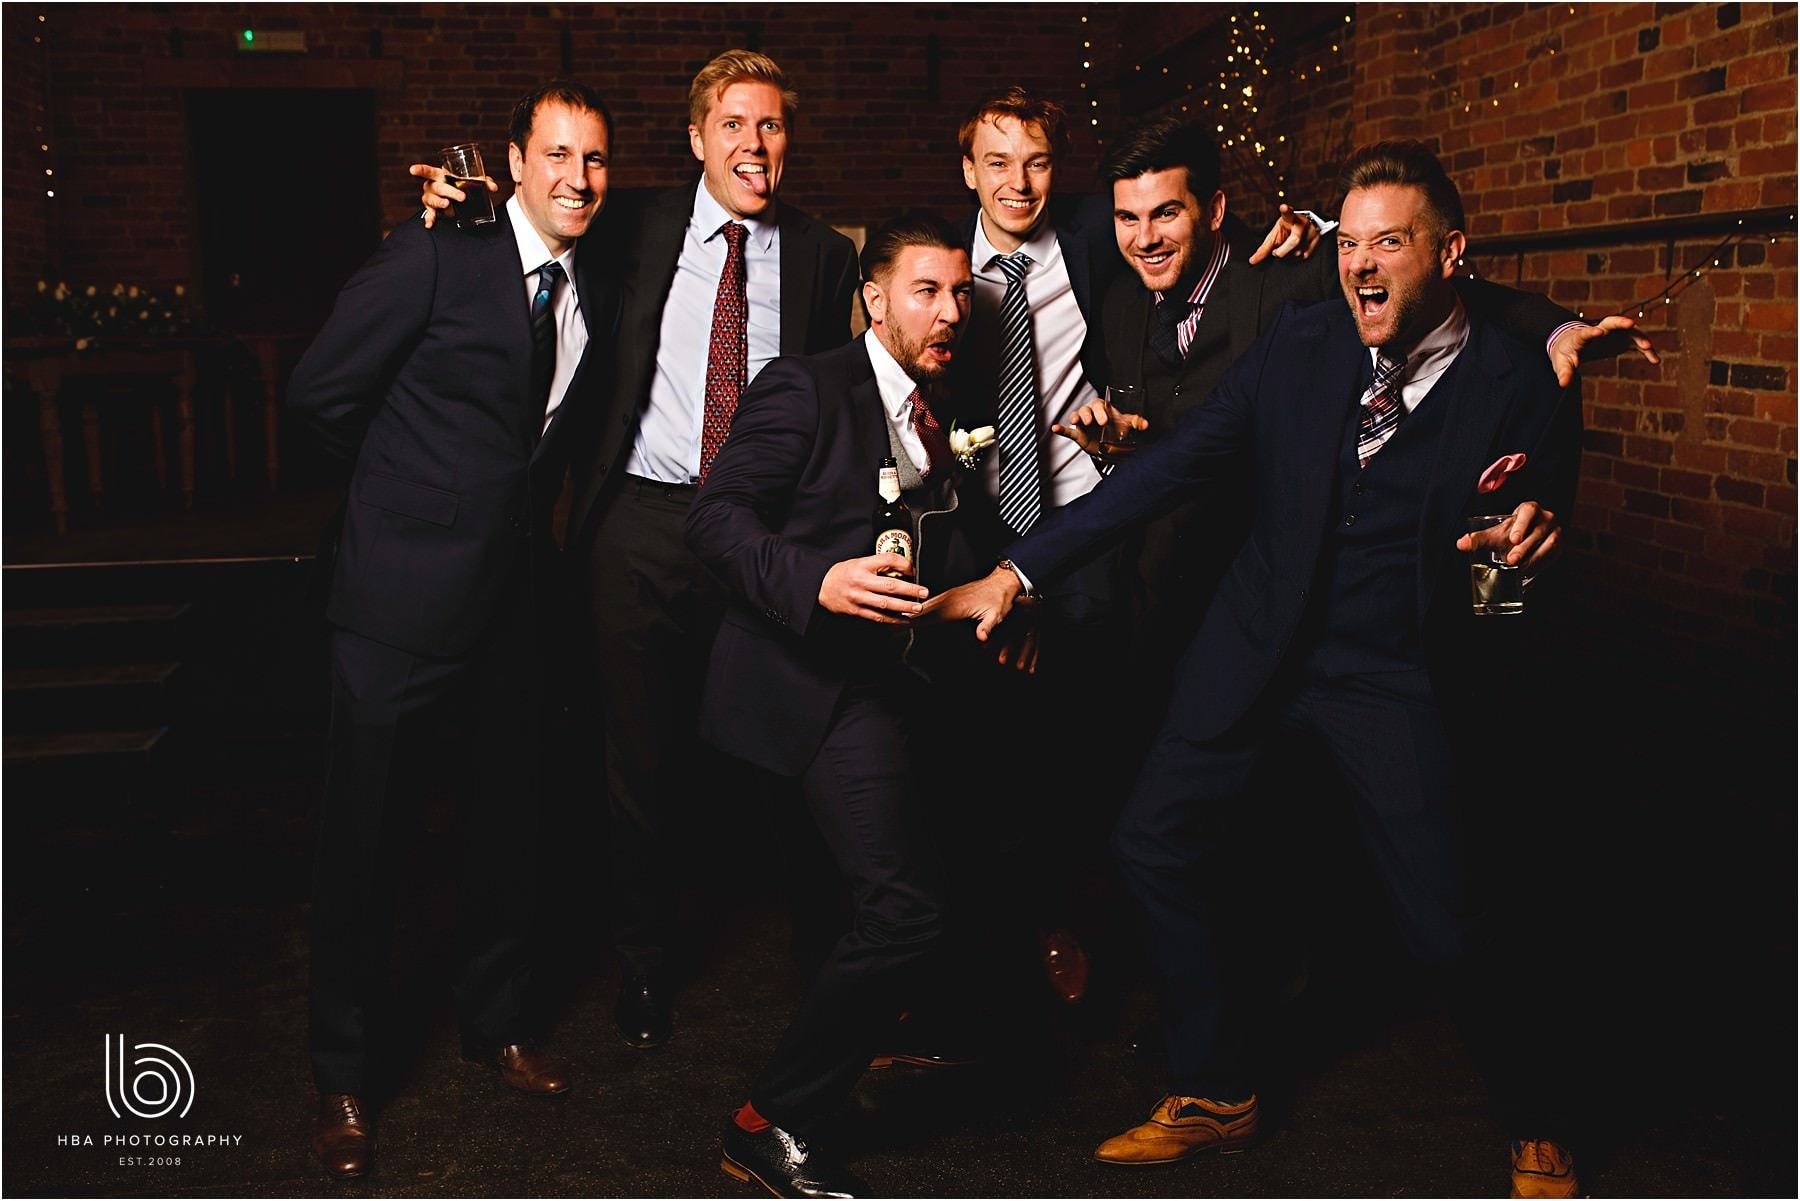 A group photo of the groom and his friends